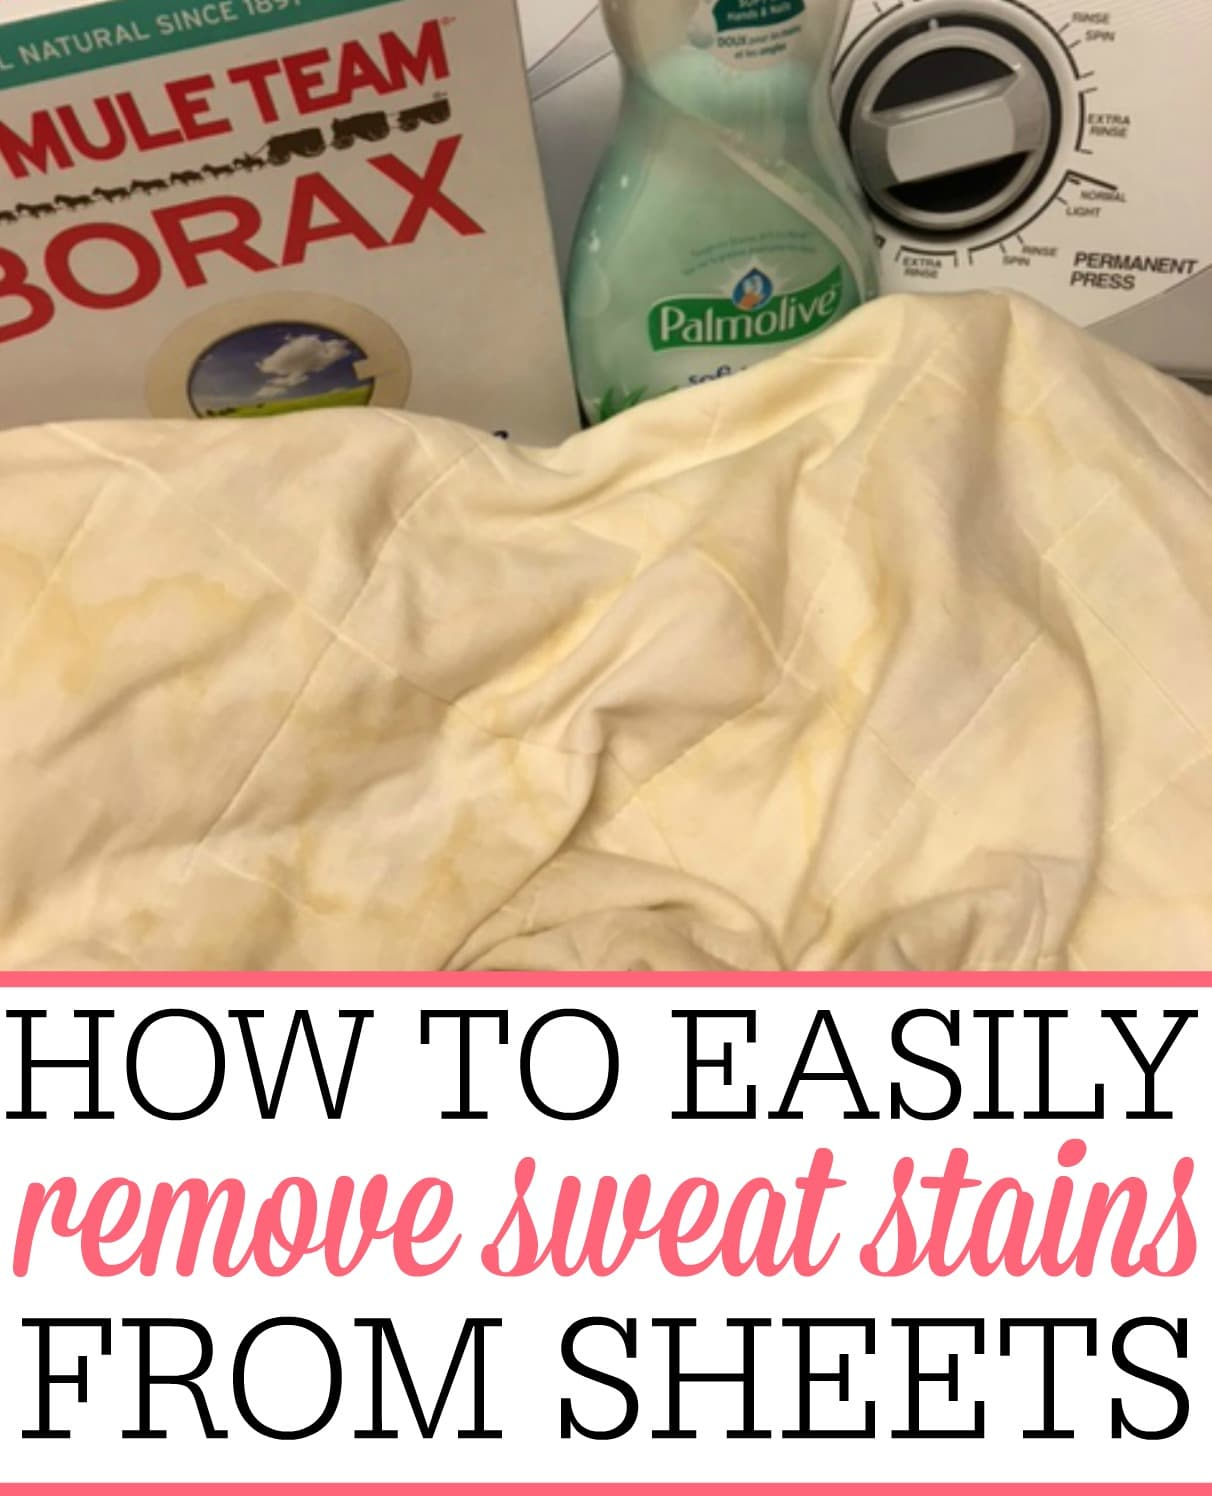 How to get sweat stains out of sheets home design for How to remove sweat stains from black shirts